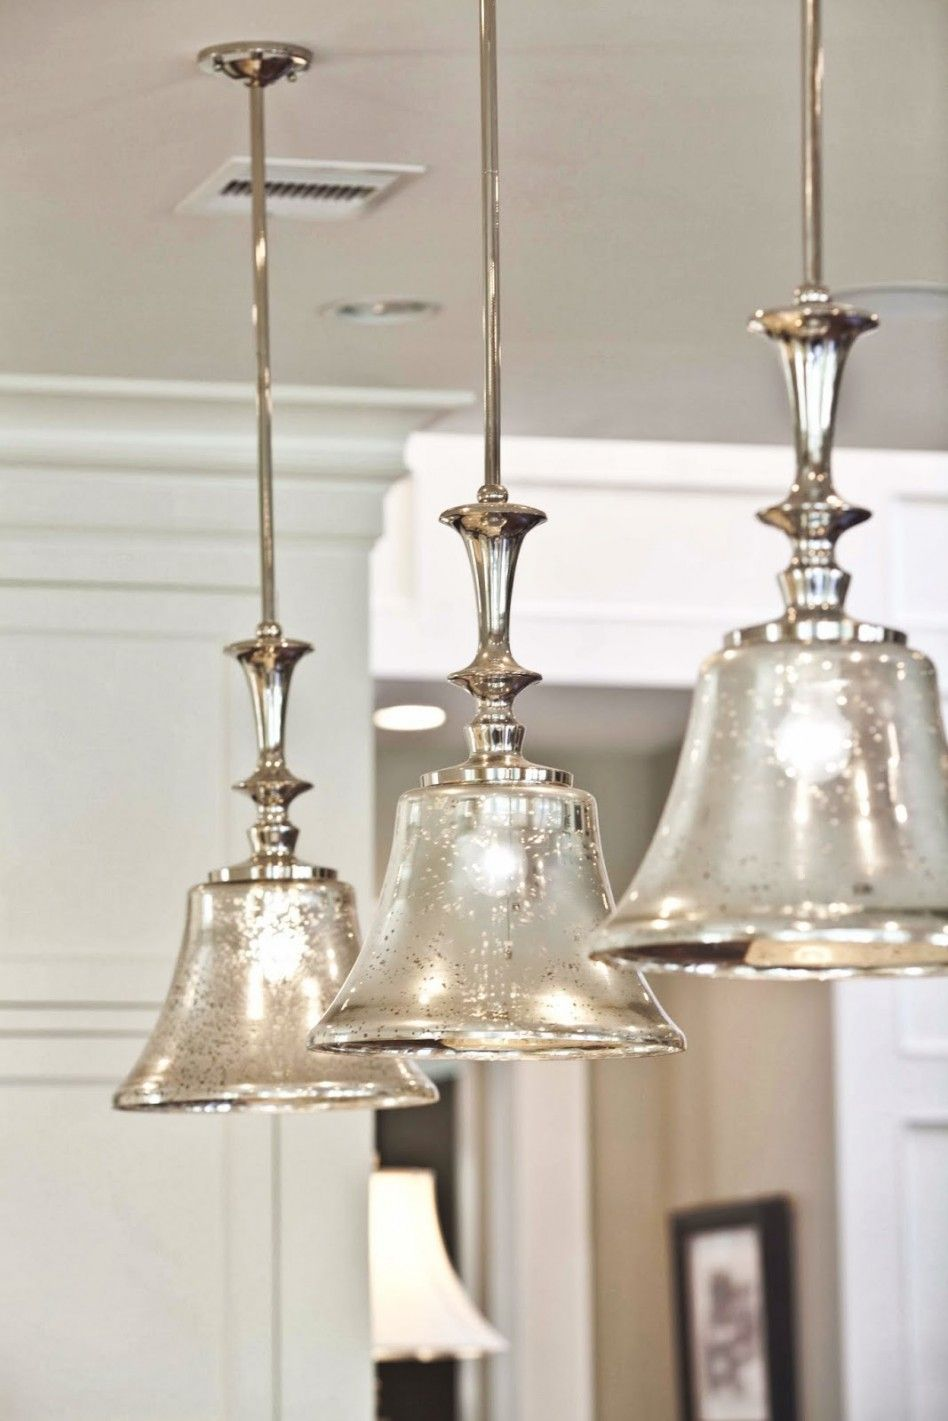 Pendant Kitchen Light Fixtures Farmhouse Unique Decorative Lighting Google Search Cool Log